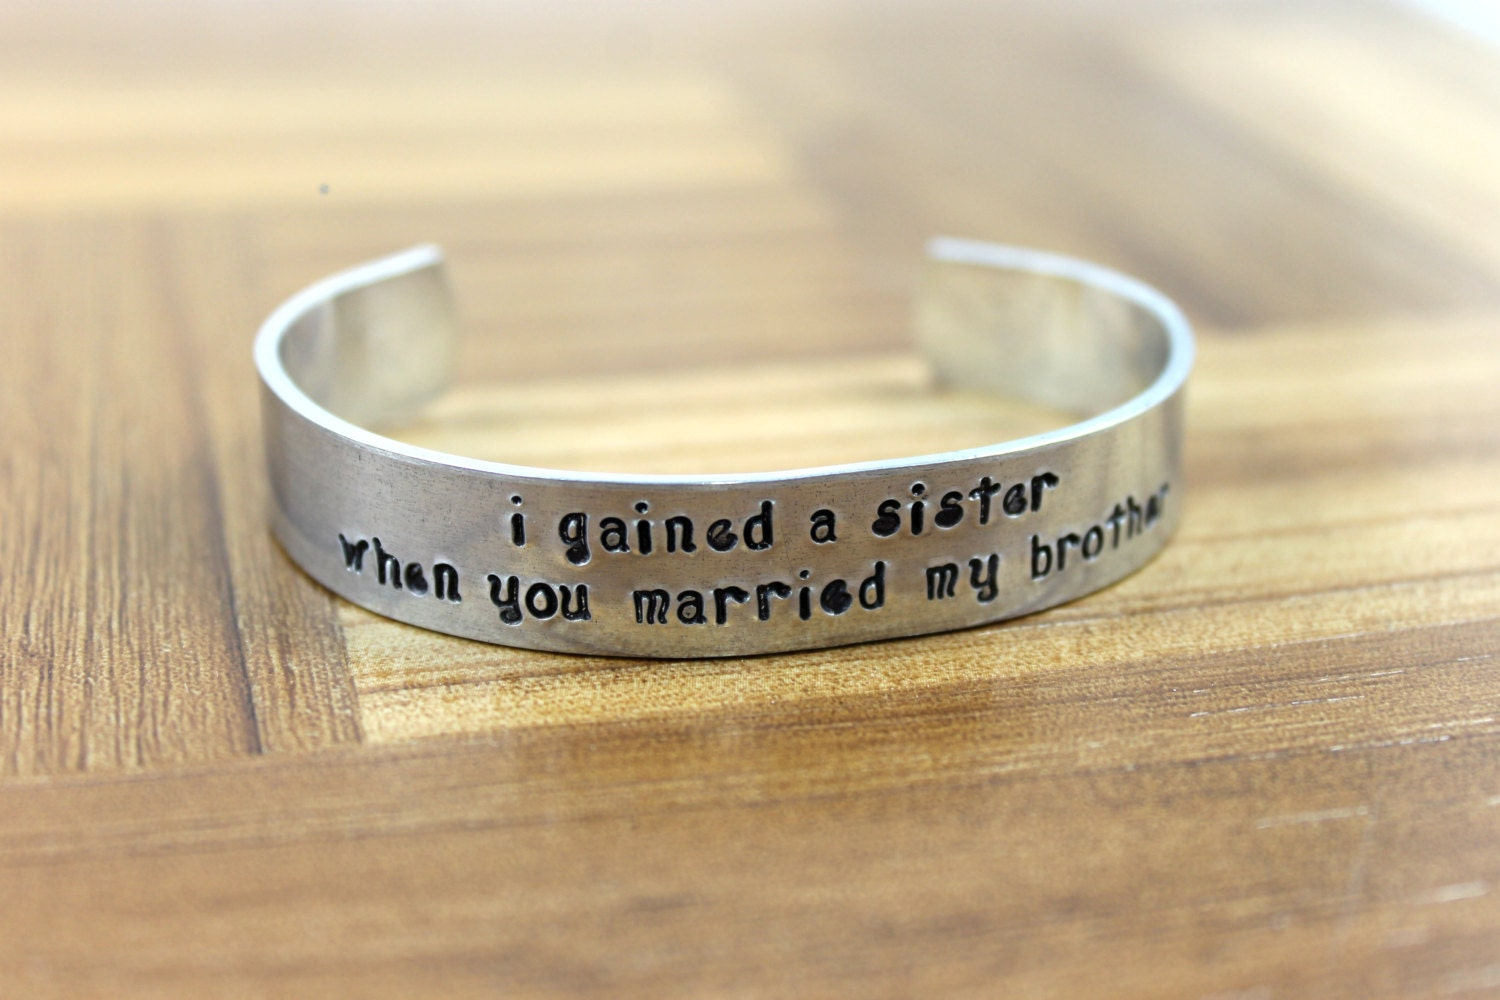 Wedding Gift Ideas For Sister From Brother : Sister-in-Law Gift / I gained a sister when you married